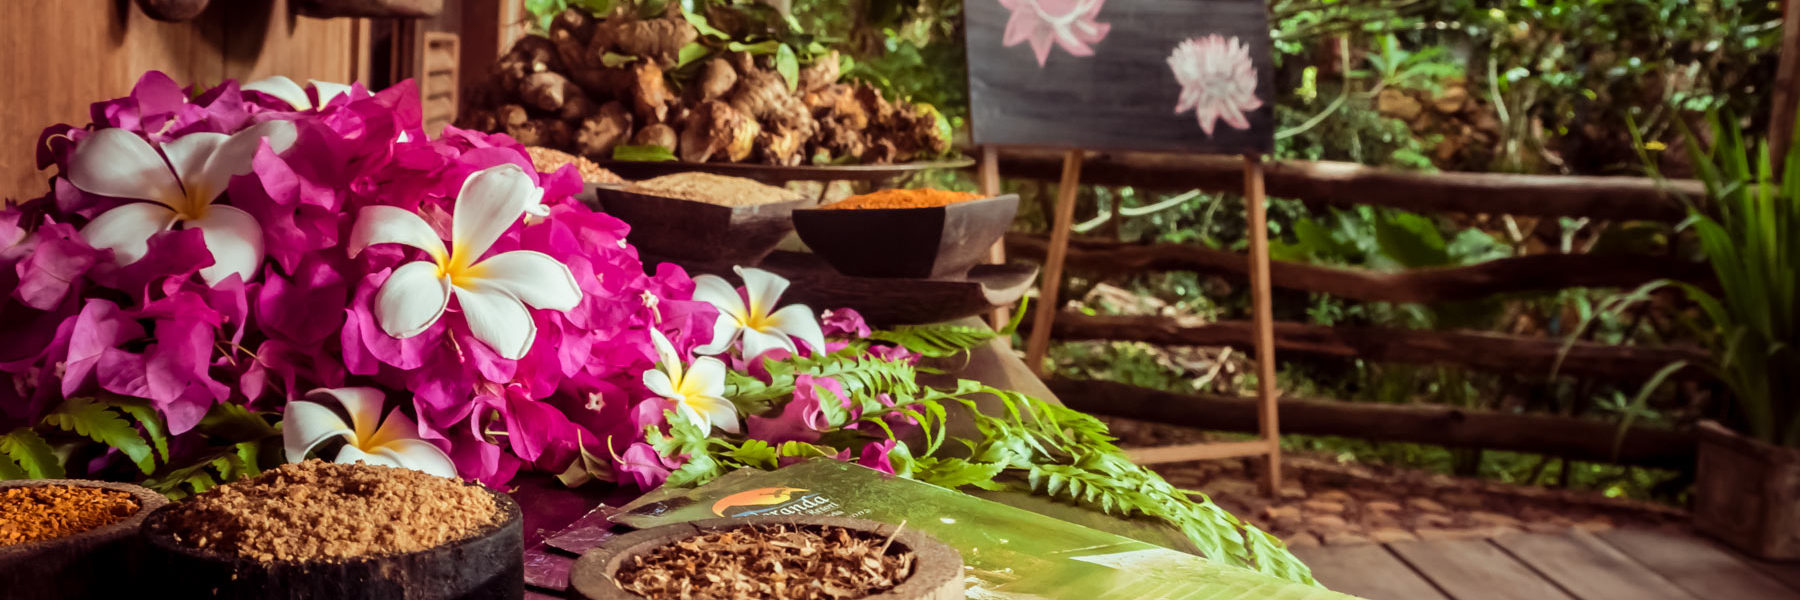 Decorated Spa entrance with flowers and massage commodities near a garden in Veranda Natural Resort, Kep - Cambodia.